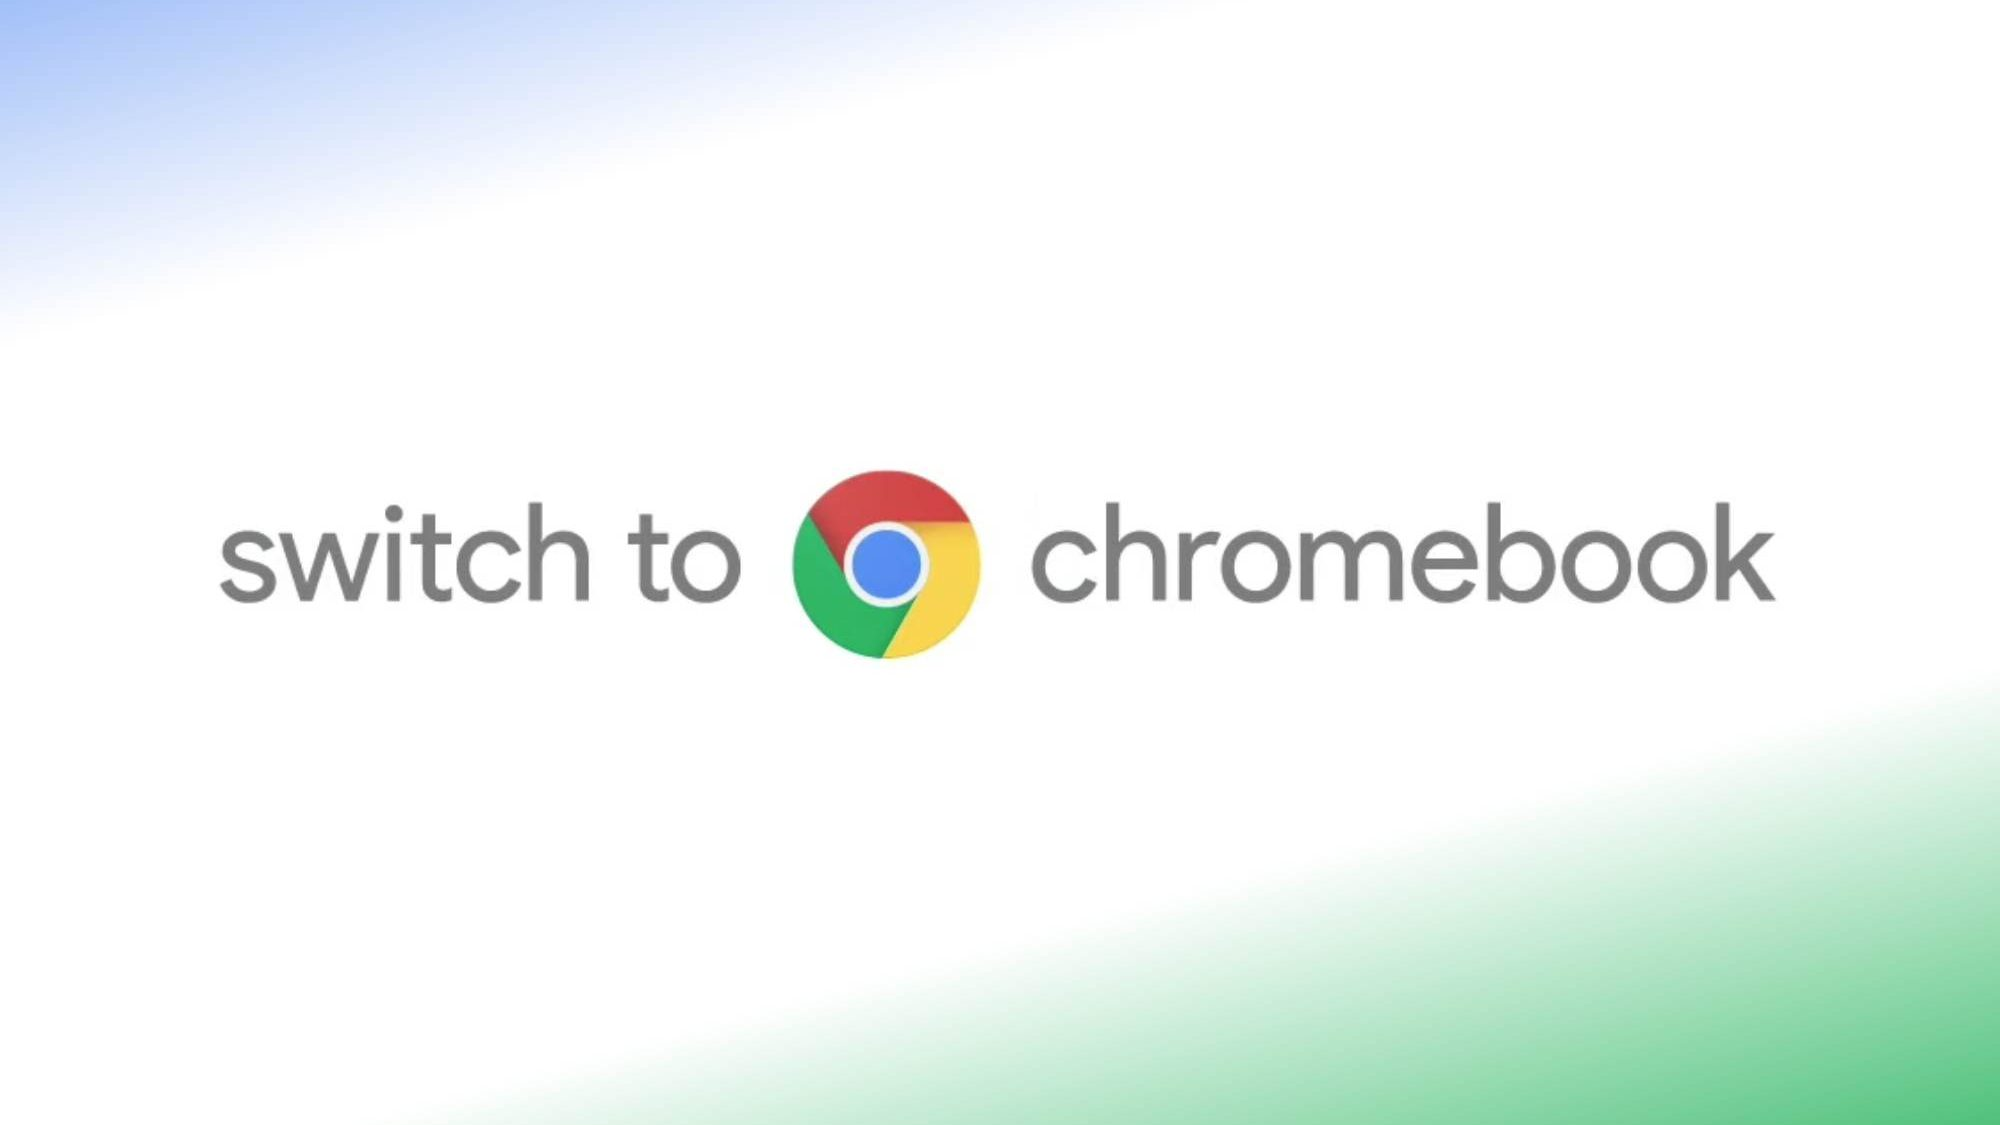 Google steals a page from Apple's playbook for new 'Switch to Chromebook' ad campaign